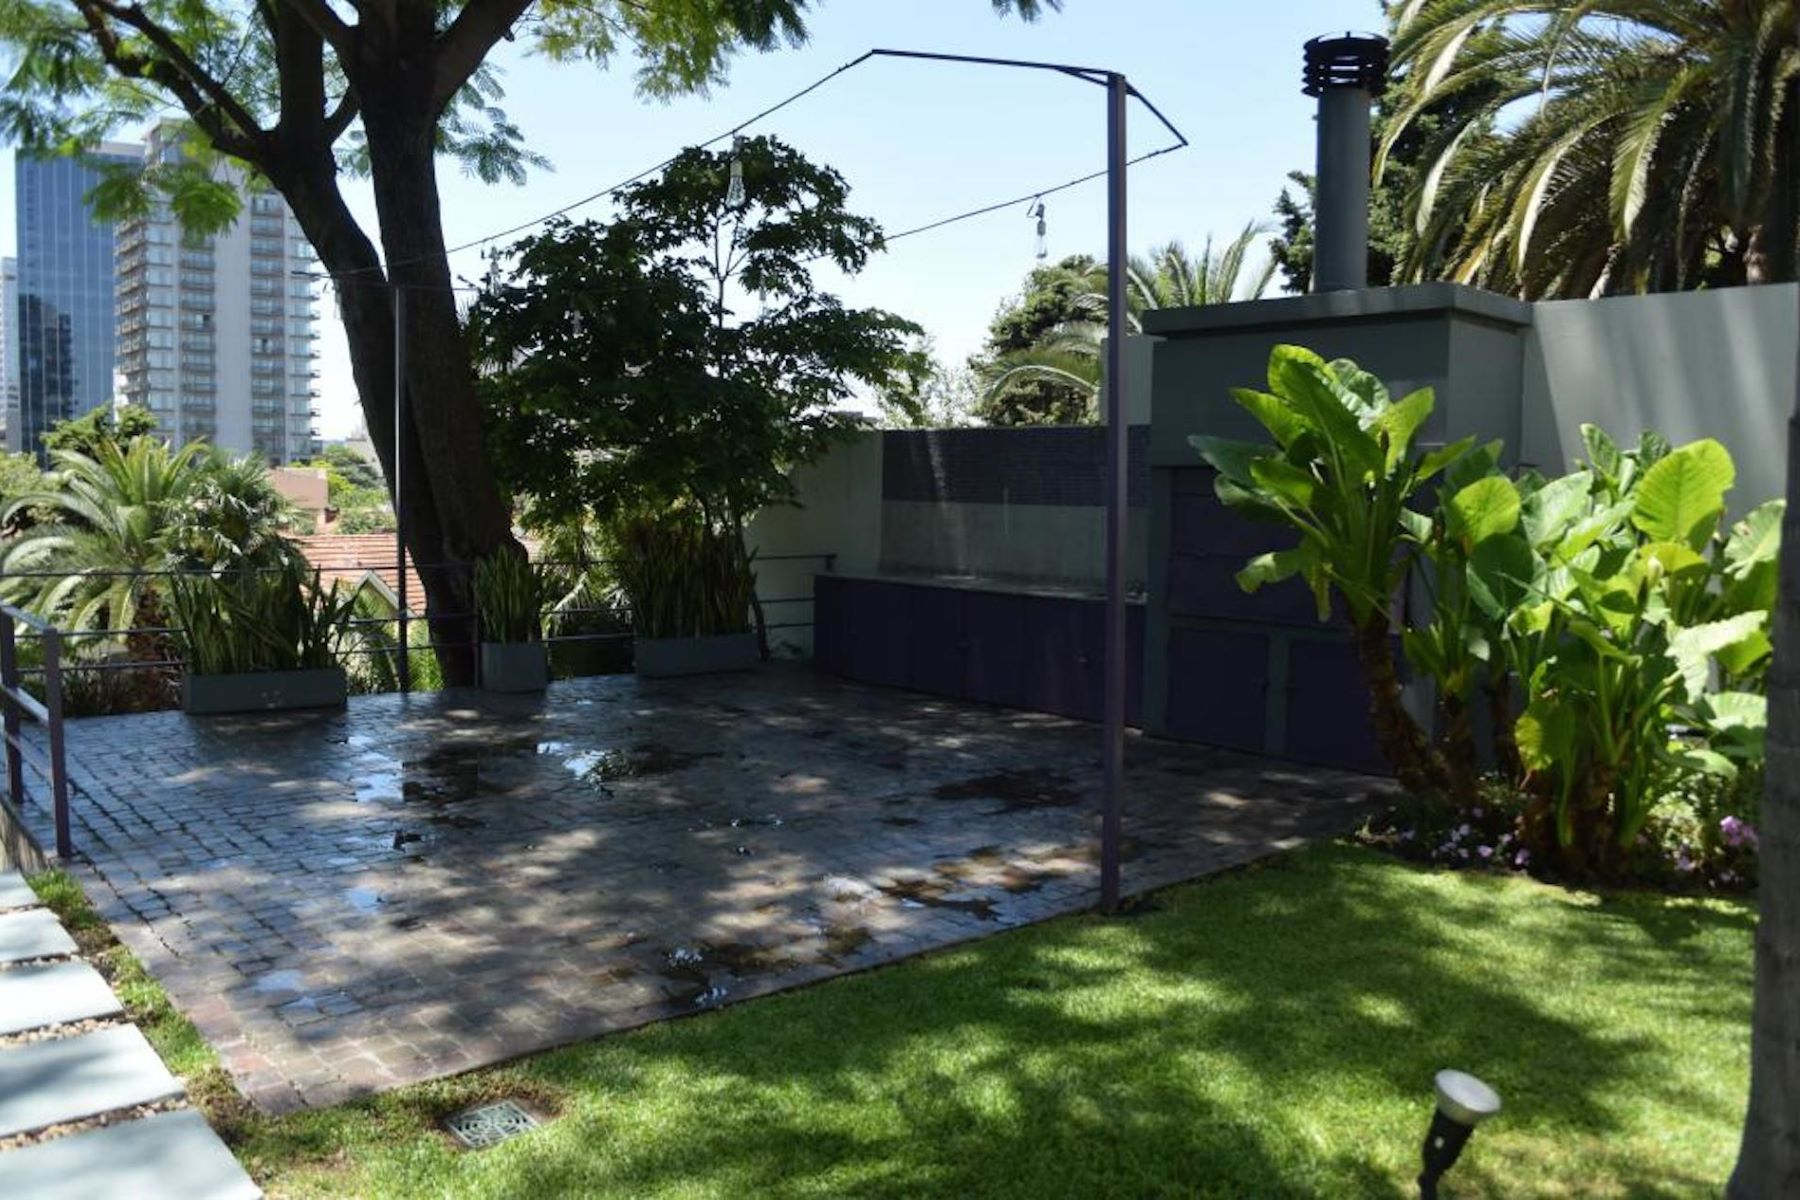 Additional photo for property listing at Incomparable Property in Vicente Lopez Gaspar Campos 171 Buenos Aires, Buenos Aires 1638 Argentina